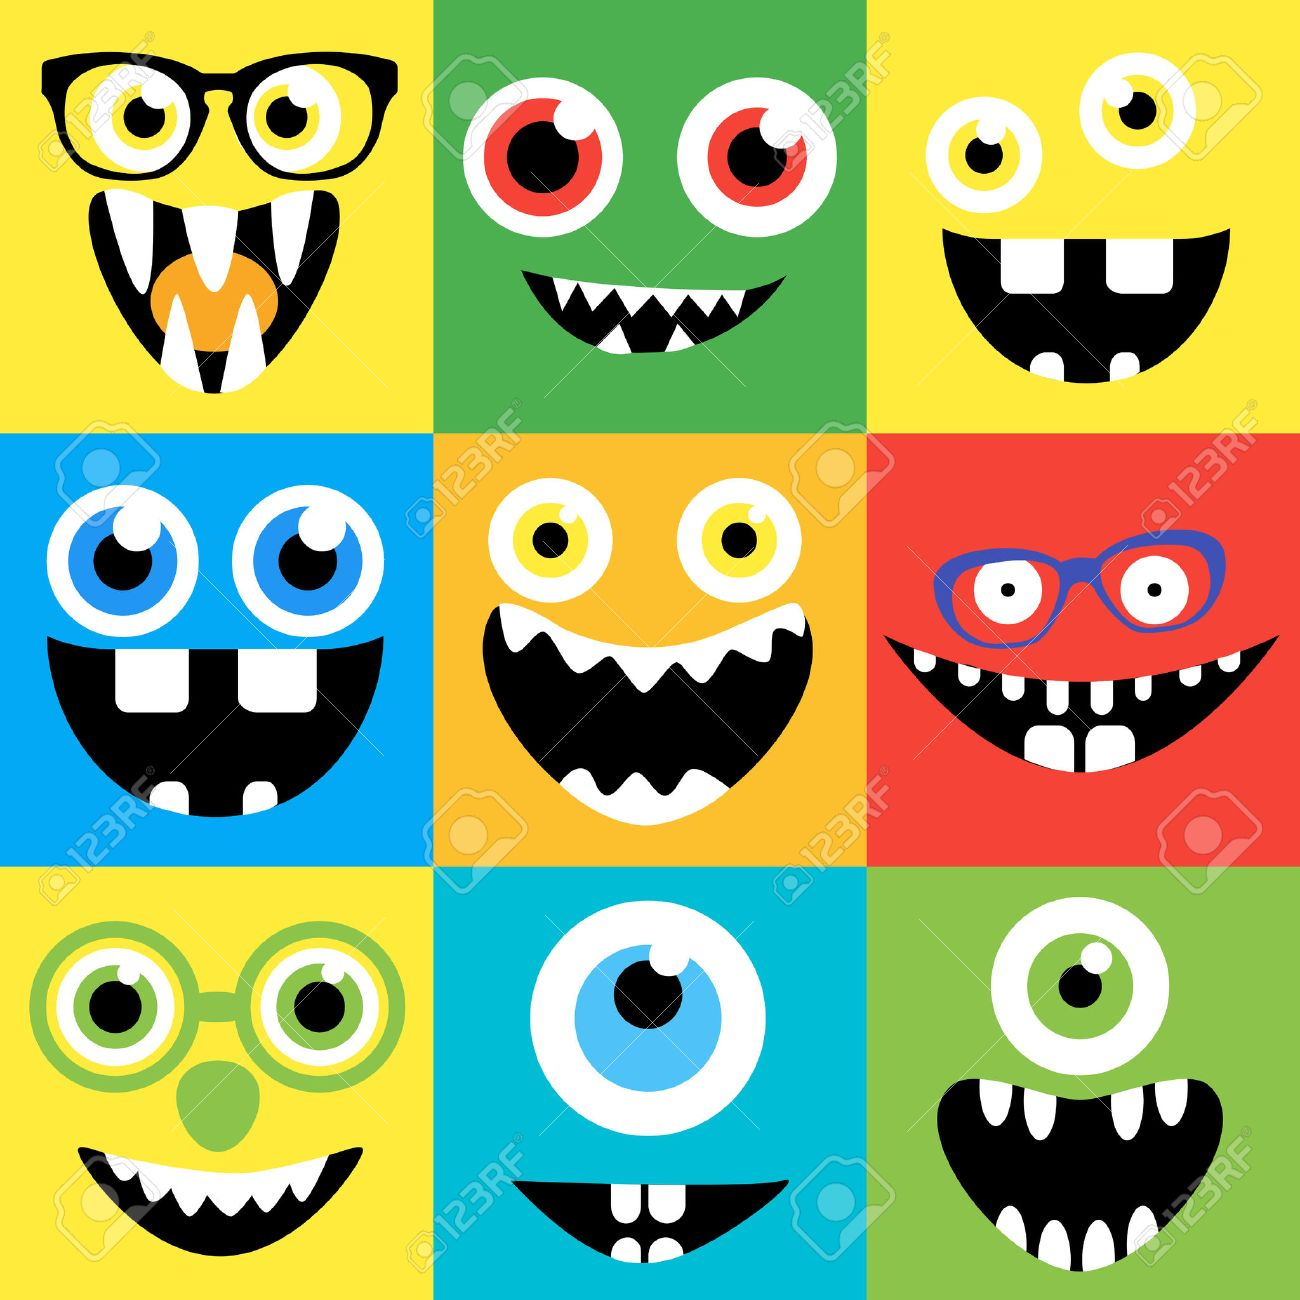 hight resolution of cartoon monster faces vector set smiles eyes eyeglasses cute square avatars and